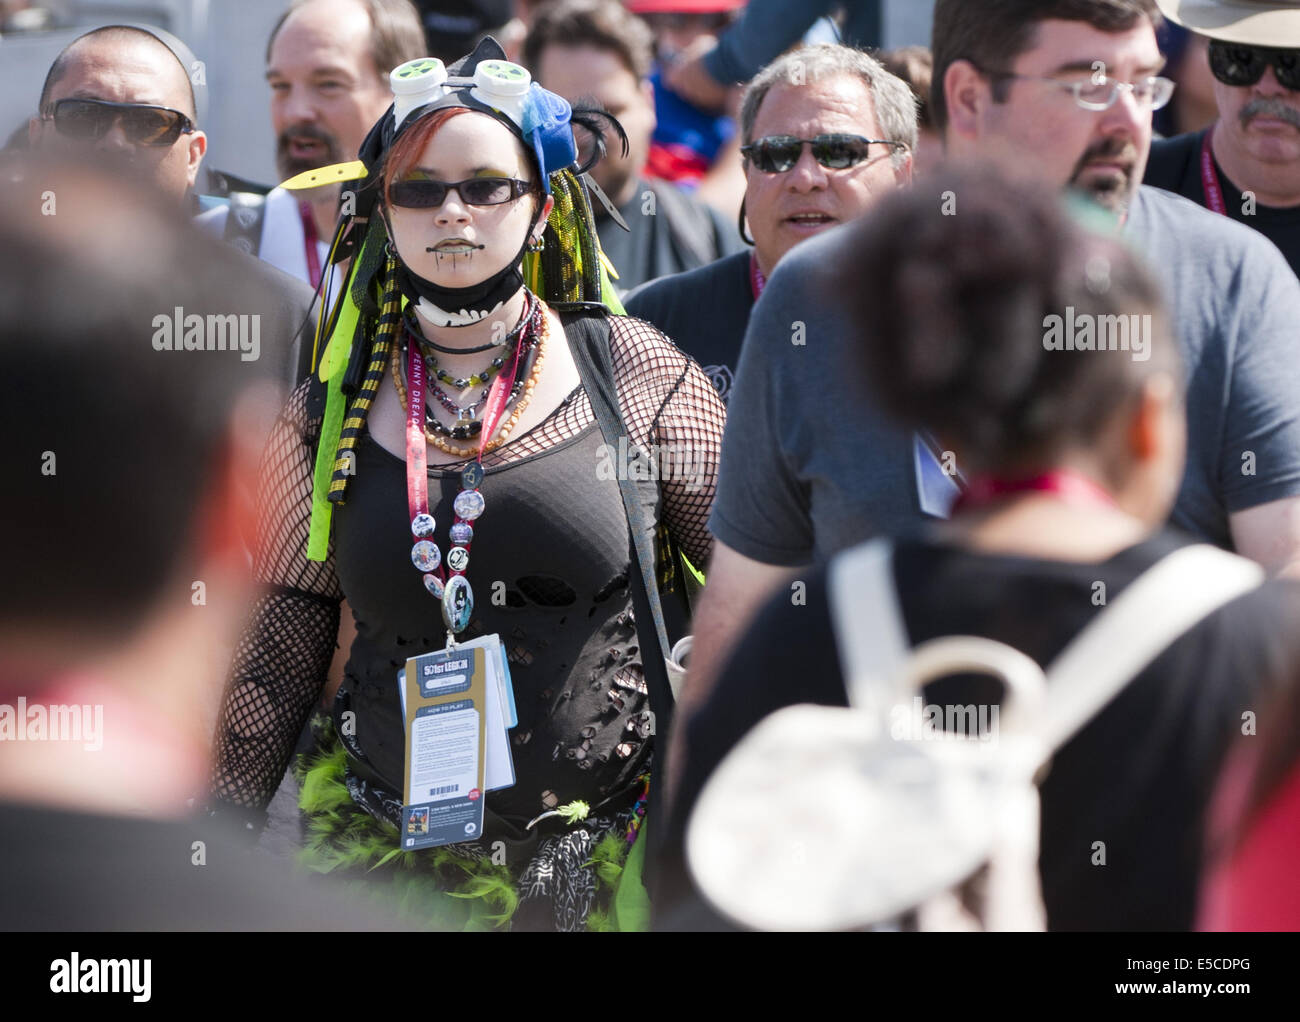 San Diego, California, USA. 26th July, 2014. A young post apocalyptic space girl crosses the street in a crowd. - Stock Image